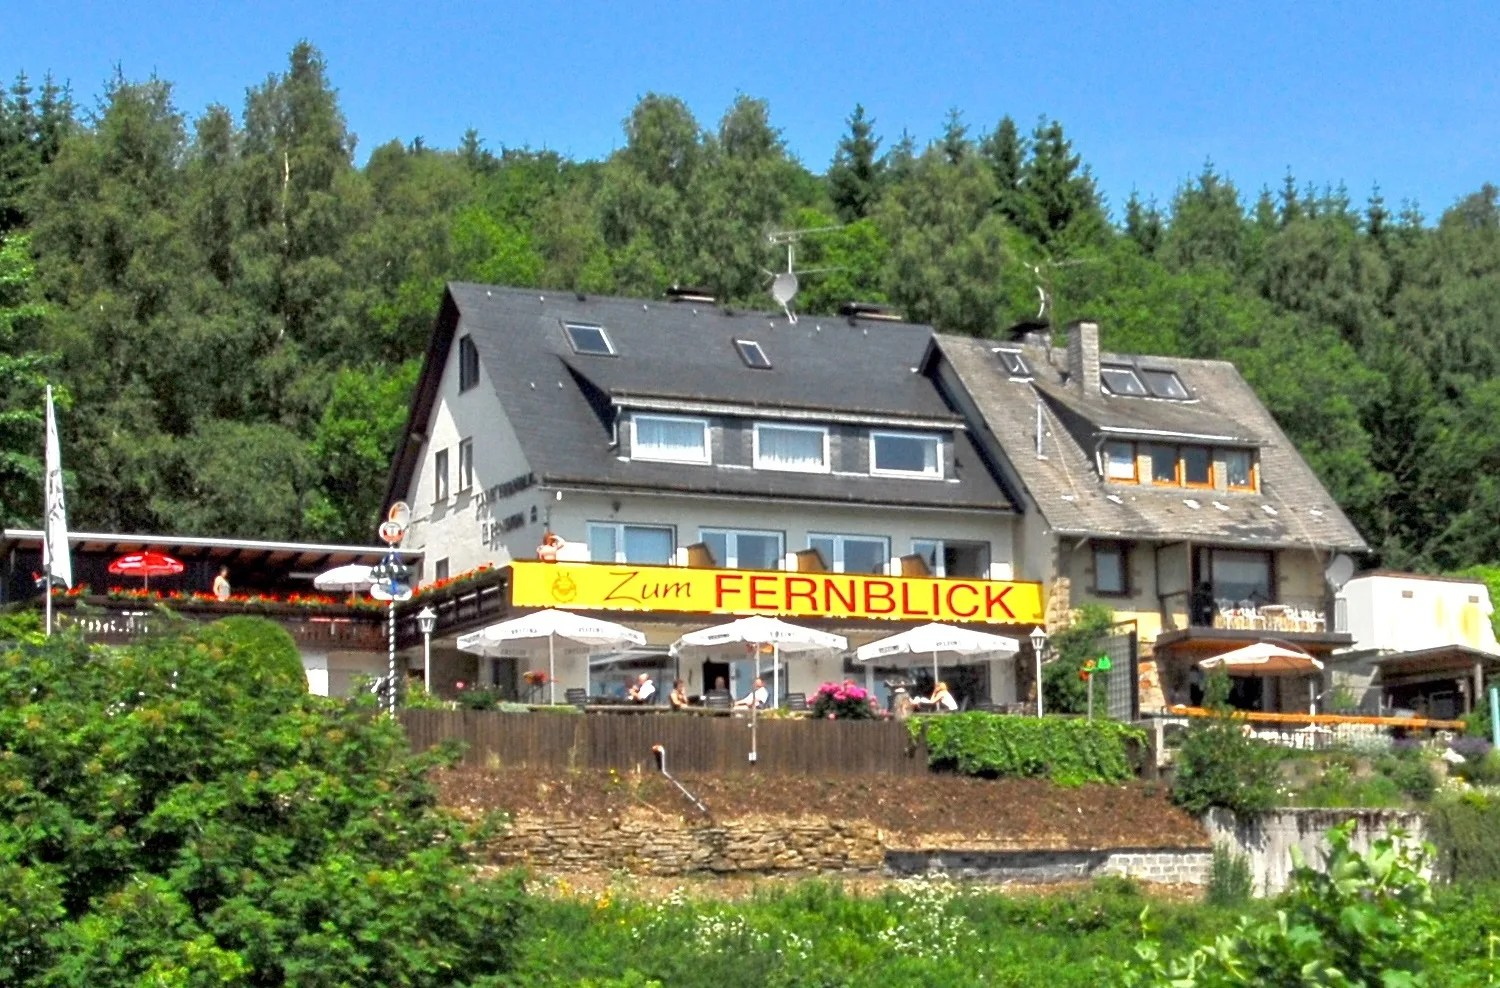 Ferienhaus Mit Pool Willingen Pension Café Fernblick Willingen Trivago De